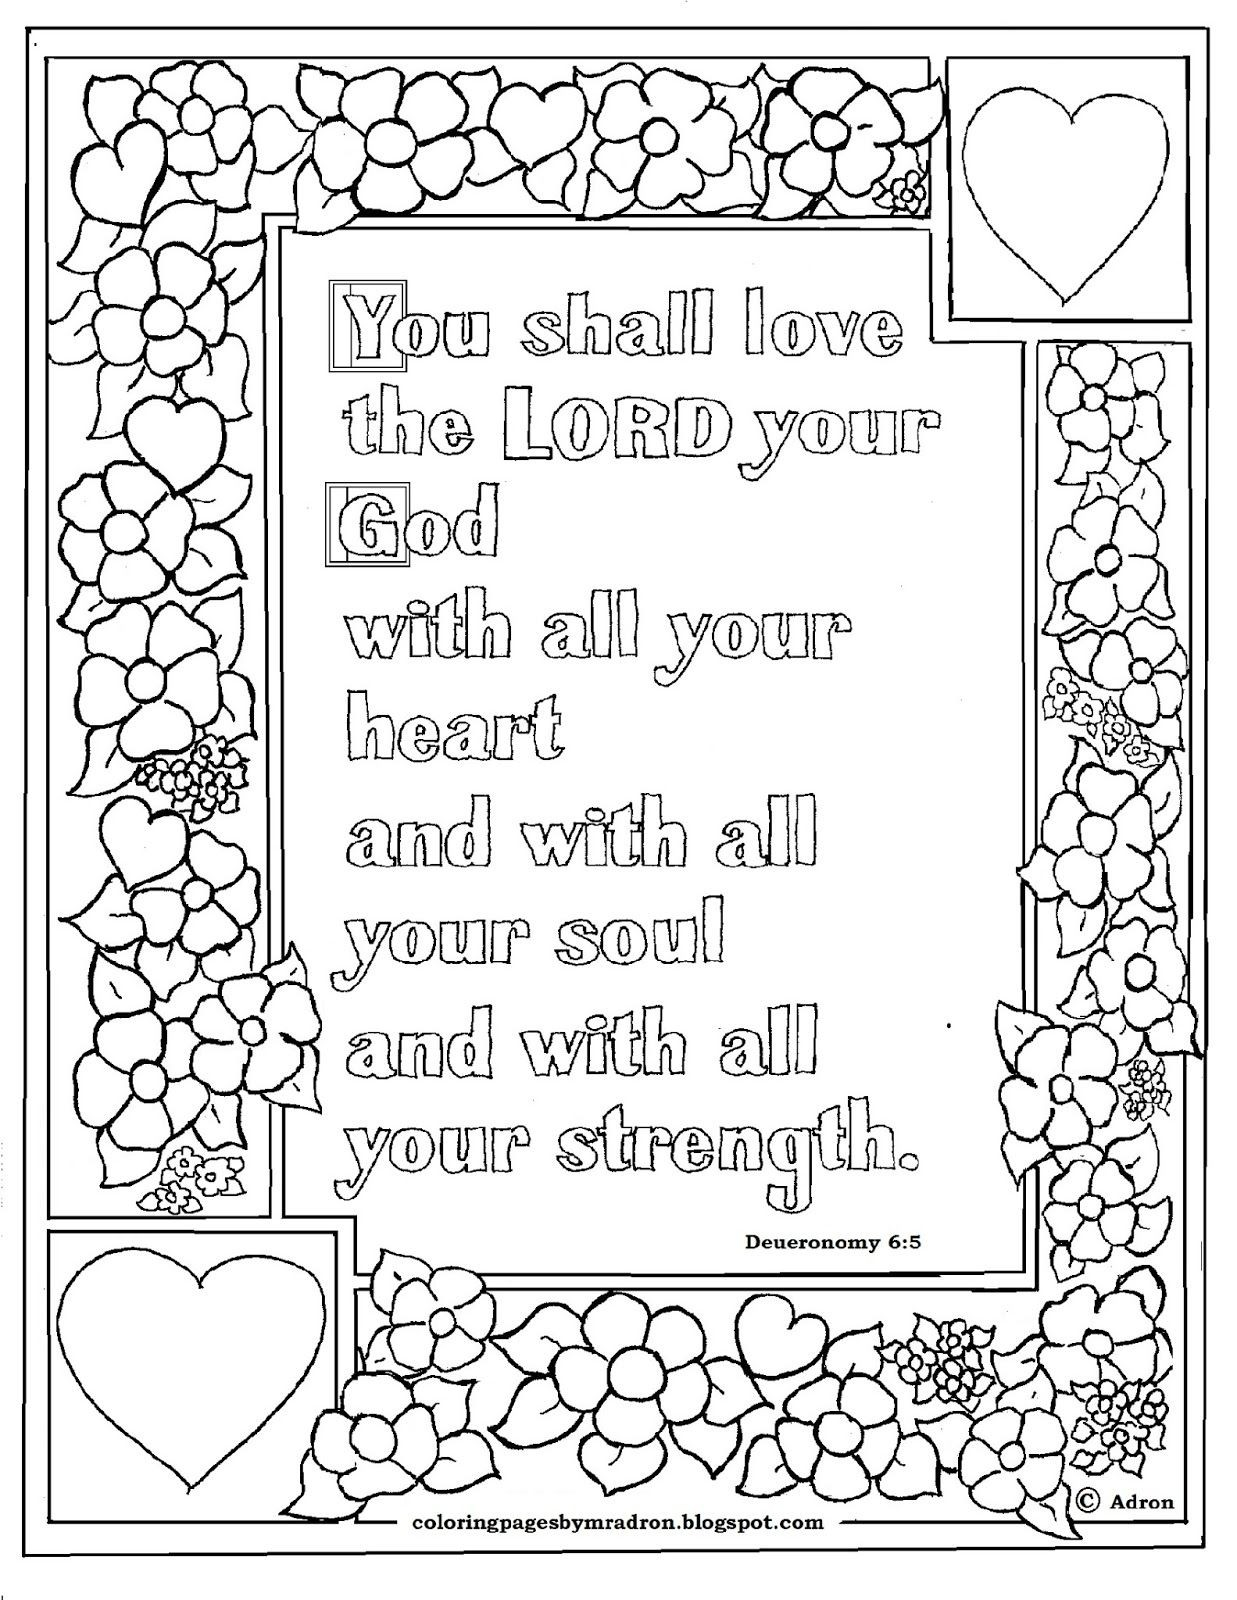 Joshua Fought The Battle Of Jericho Coloring Page Luxury Walls Of Jericho Bible Coloring Pages C Trade